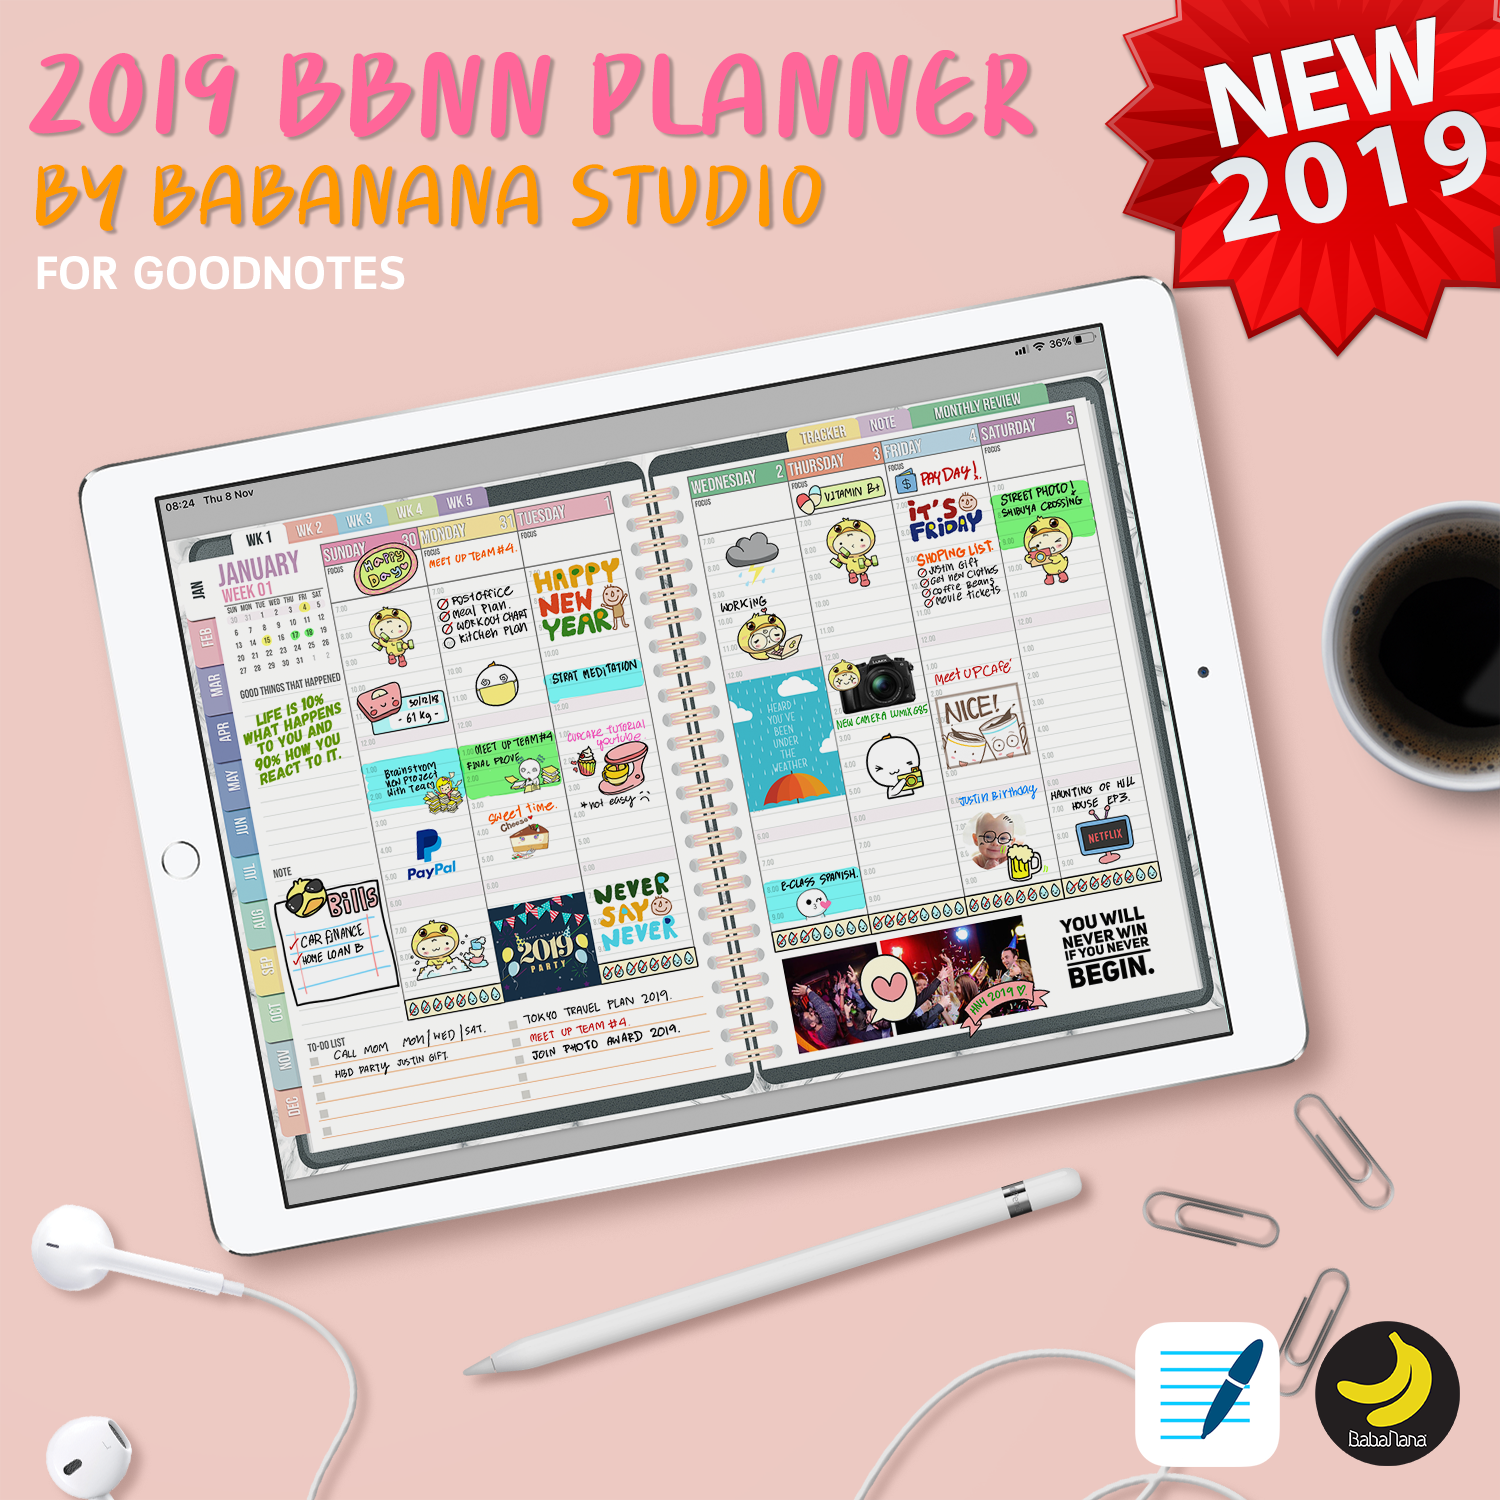 2019 babanana digital planner for goodnotes